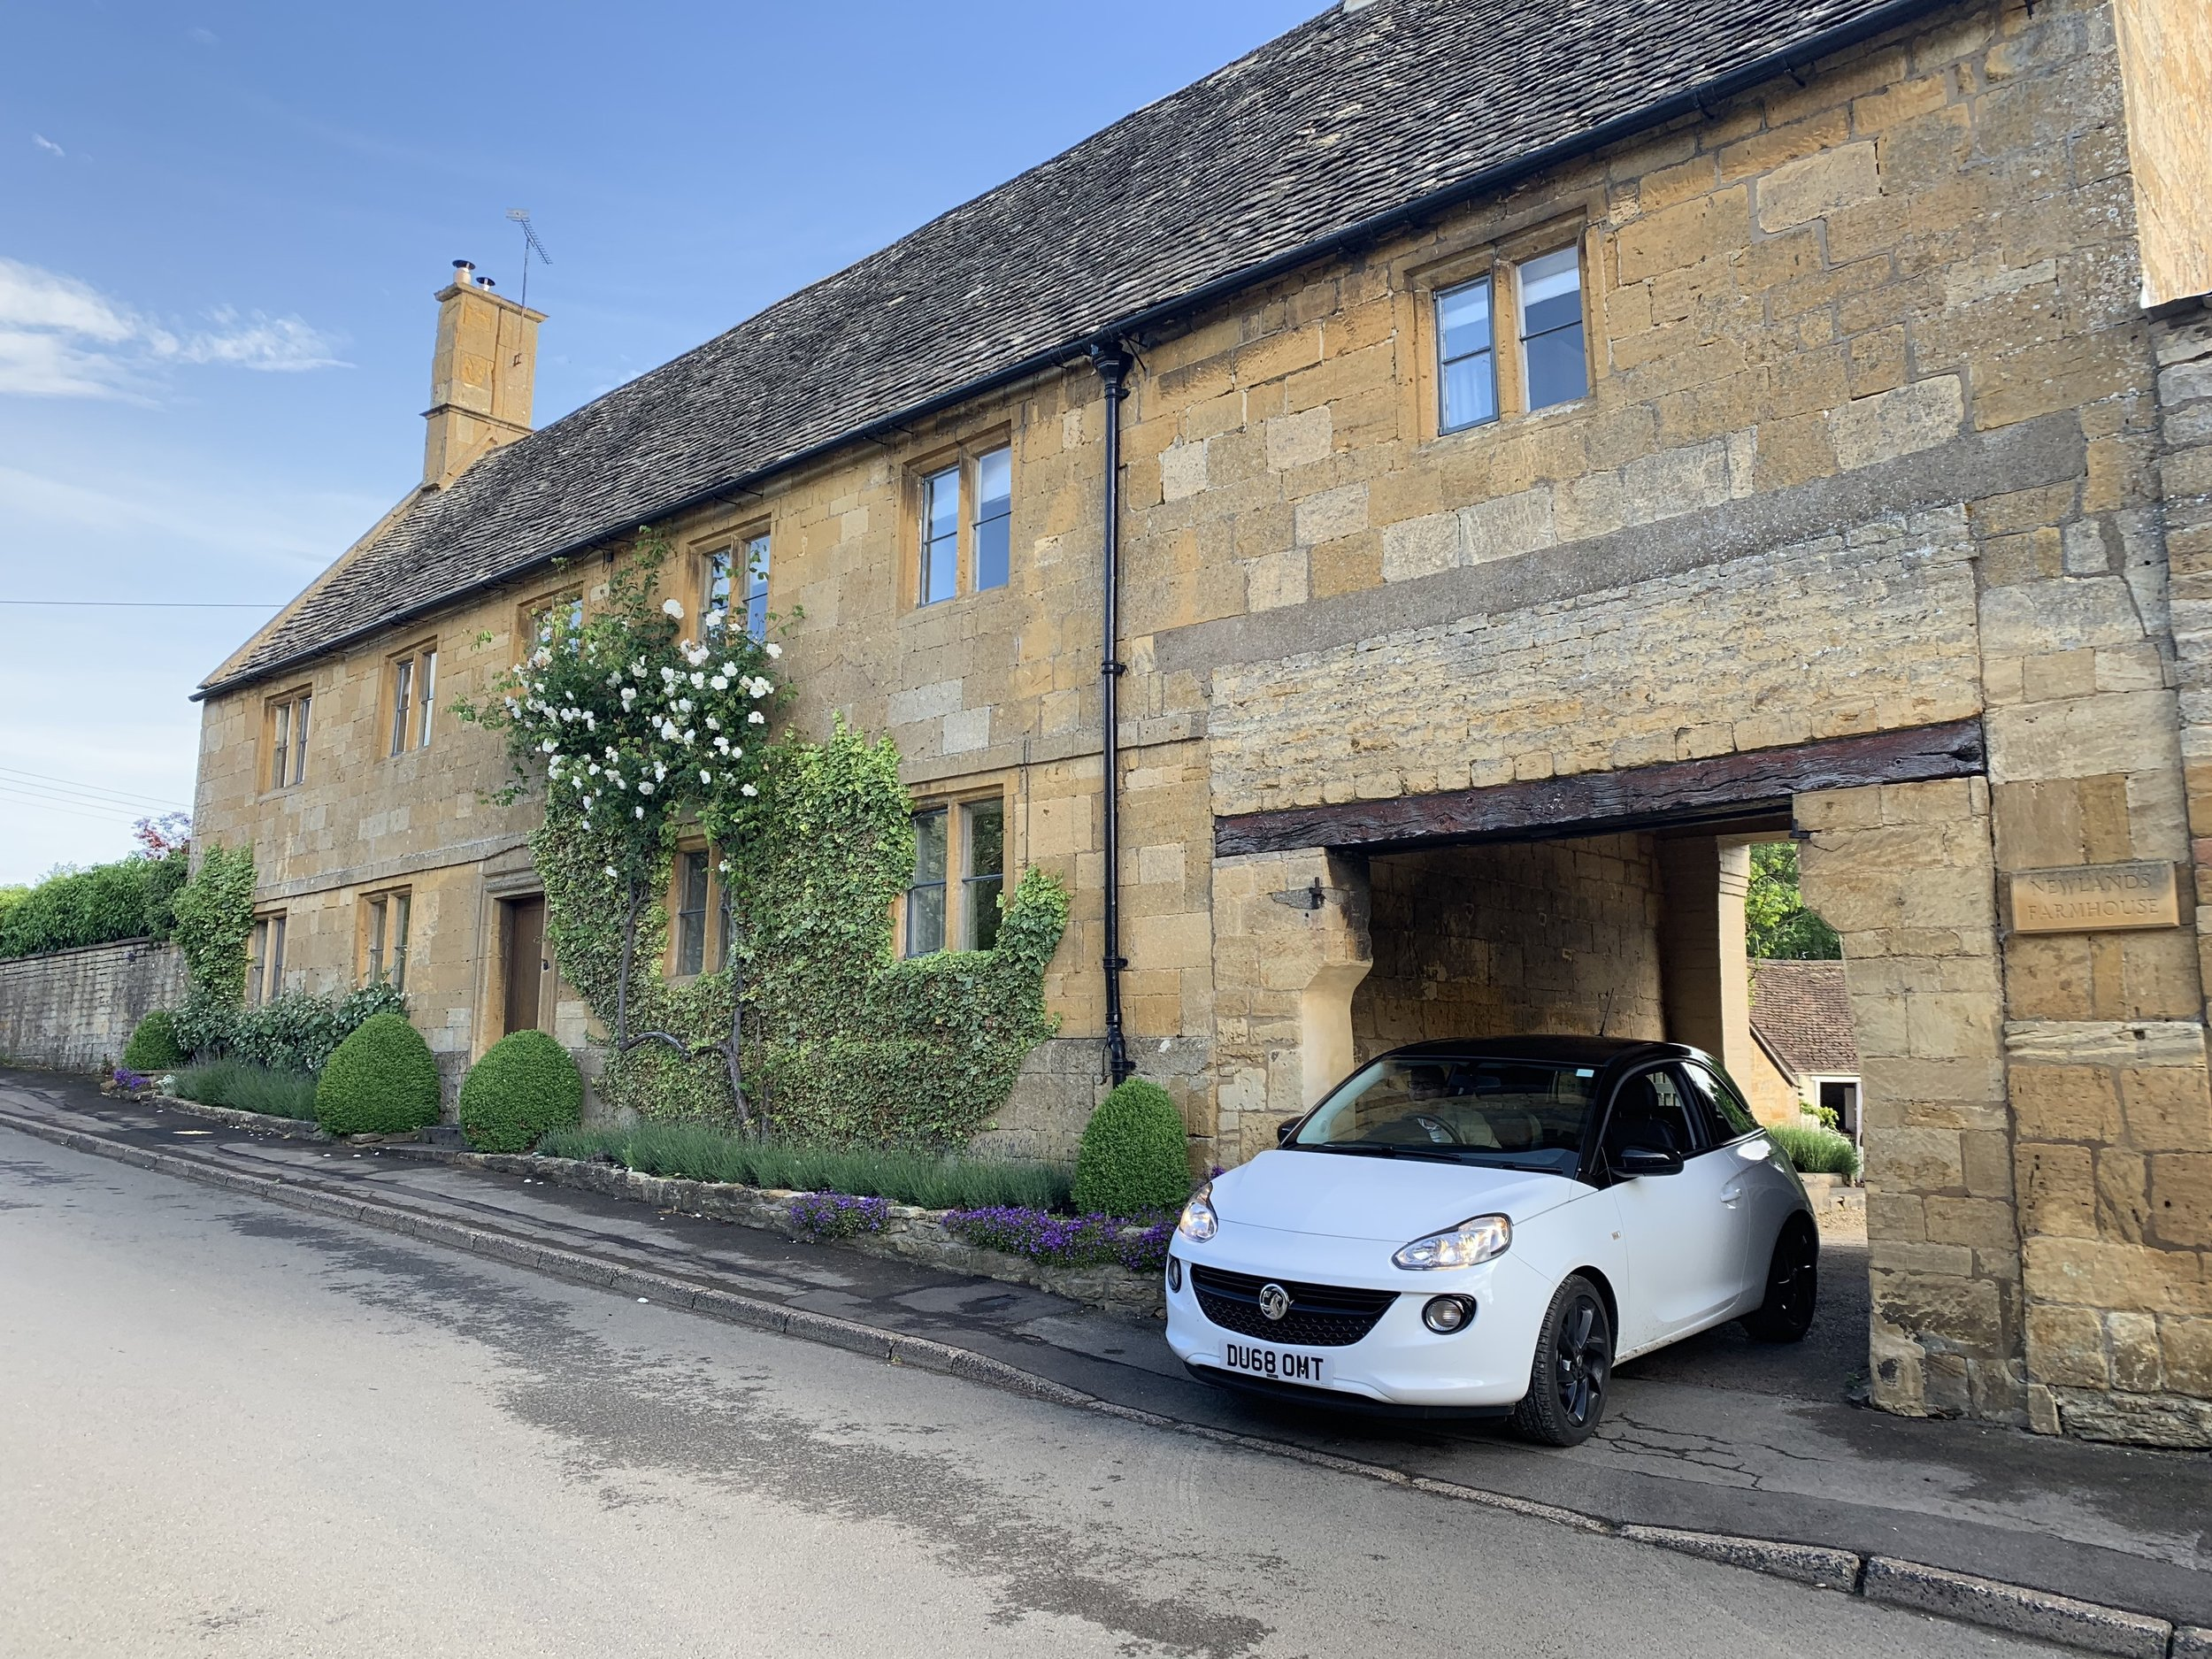 Leaving our AirBnB in the Cotswolds. We had a little apartment above this picturesque home. A perfect place to start off our vacation! And that's our cute little bumper car. The miracle is that we made it our alive. Brock was a champ driving on the left side of the road. I had to work really hard at not scaring him to death with unwelcome teeth gritting and audible praying/grimacing as we hugged the left side of the road.